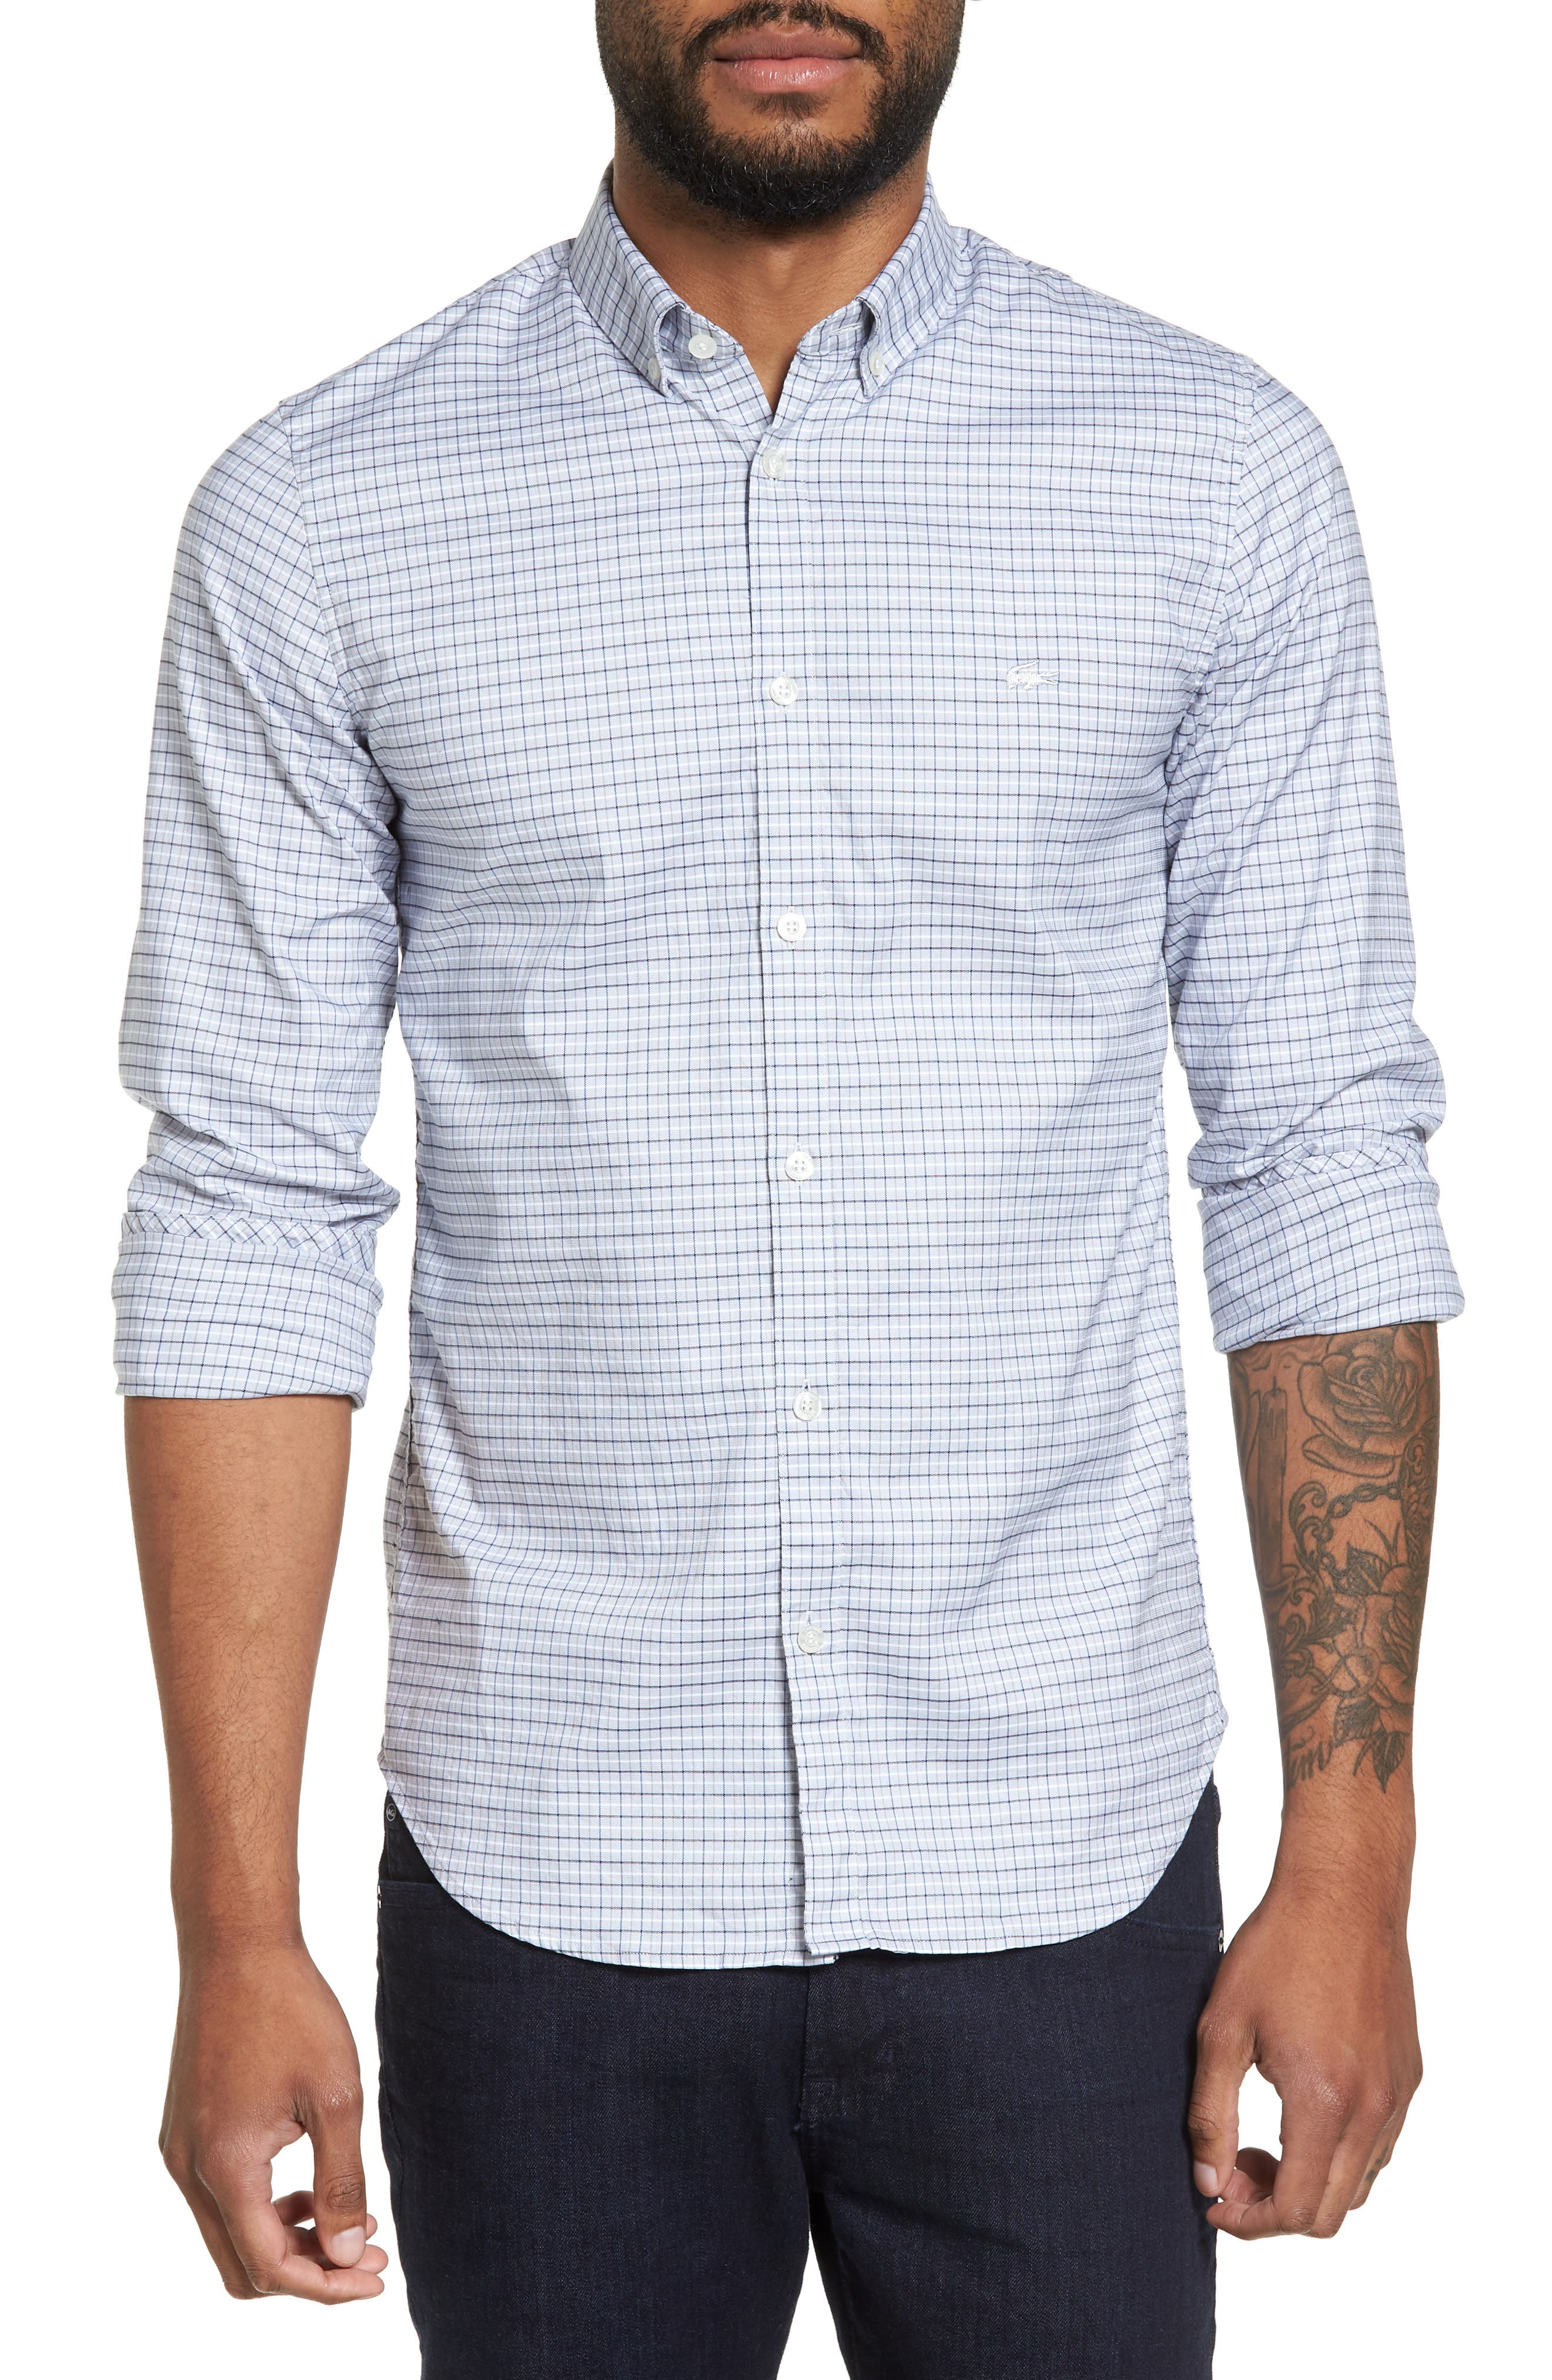 Lacoste Slim Fit Plaid Shirt